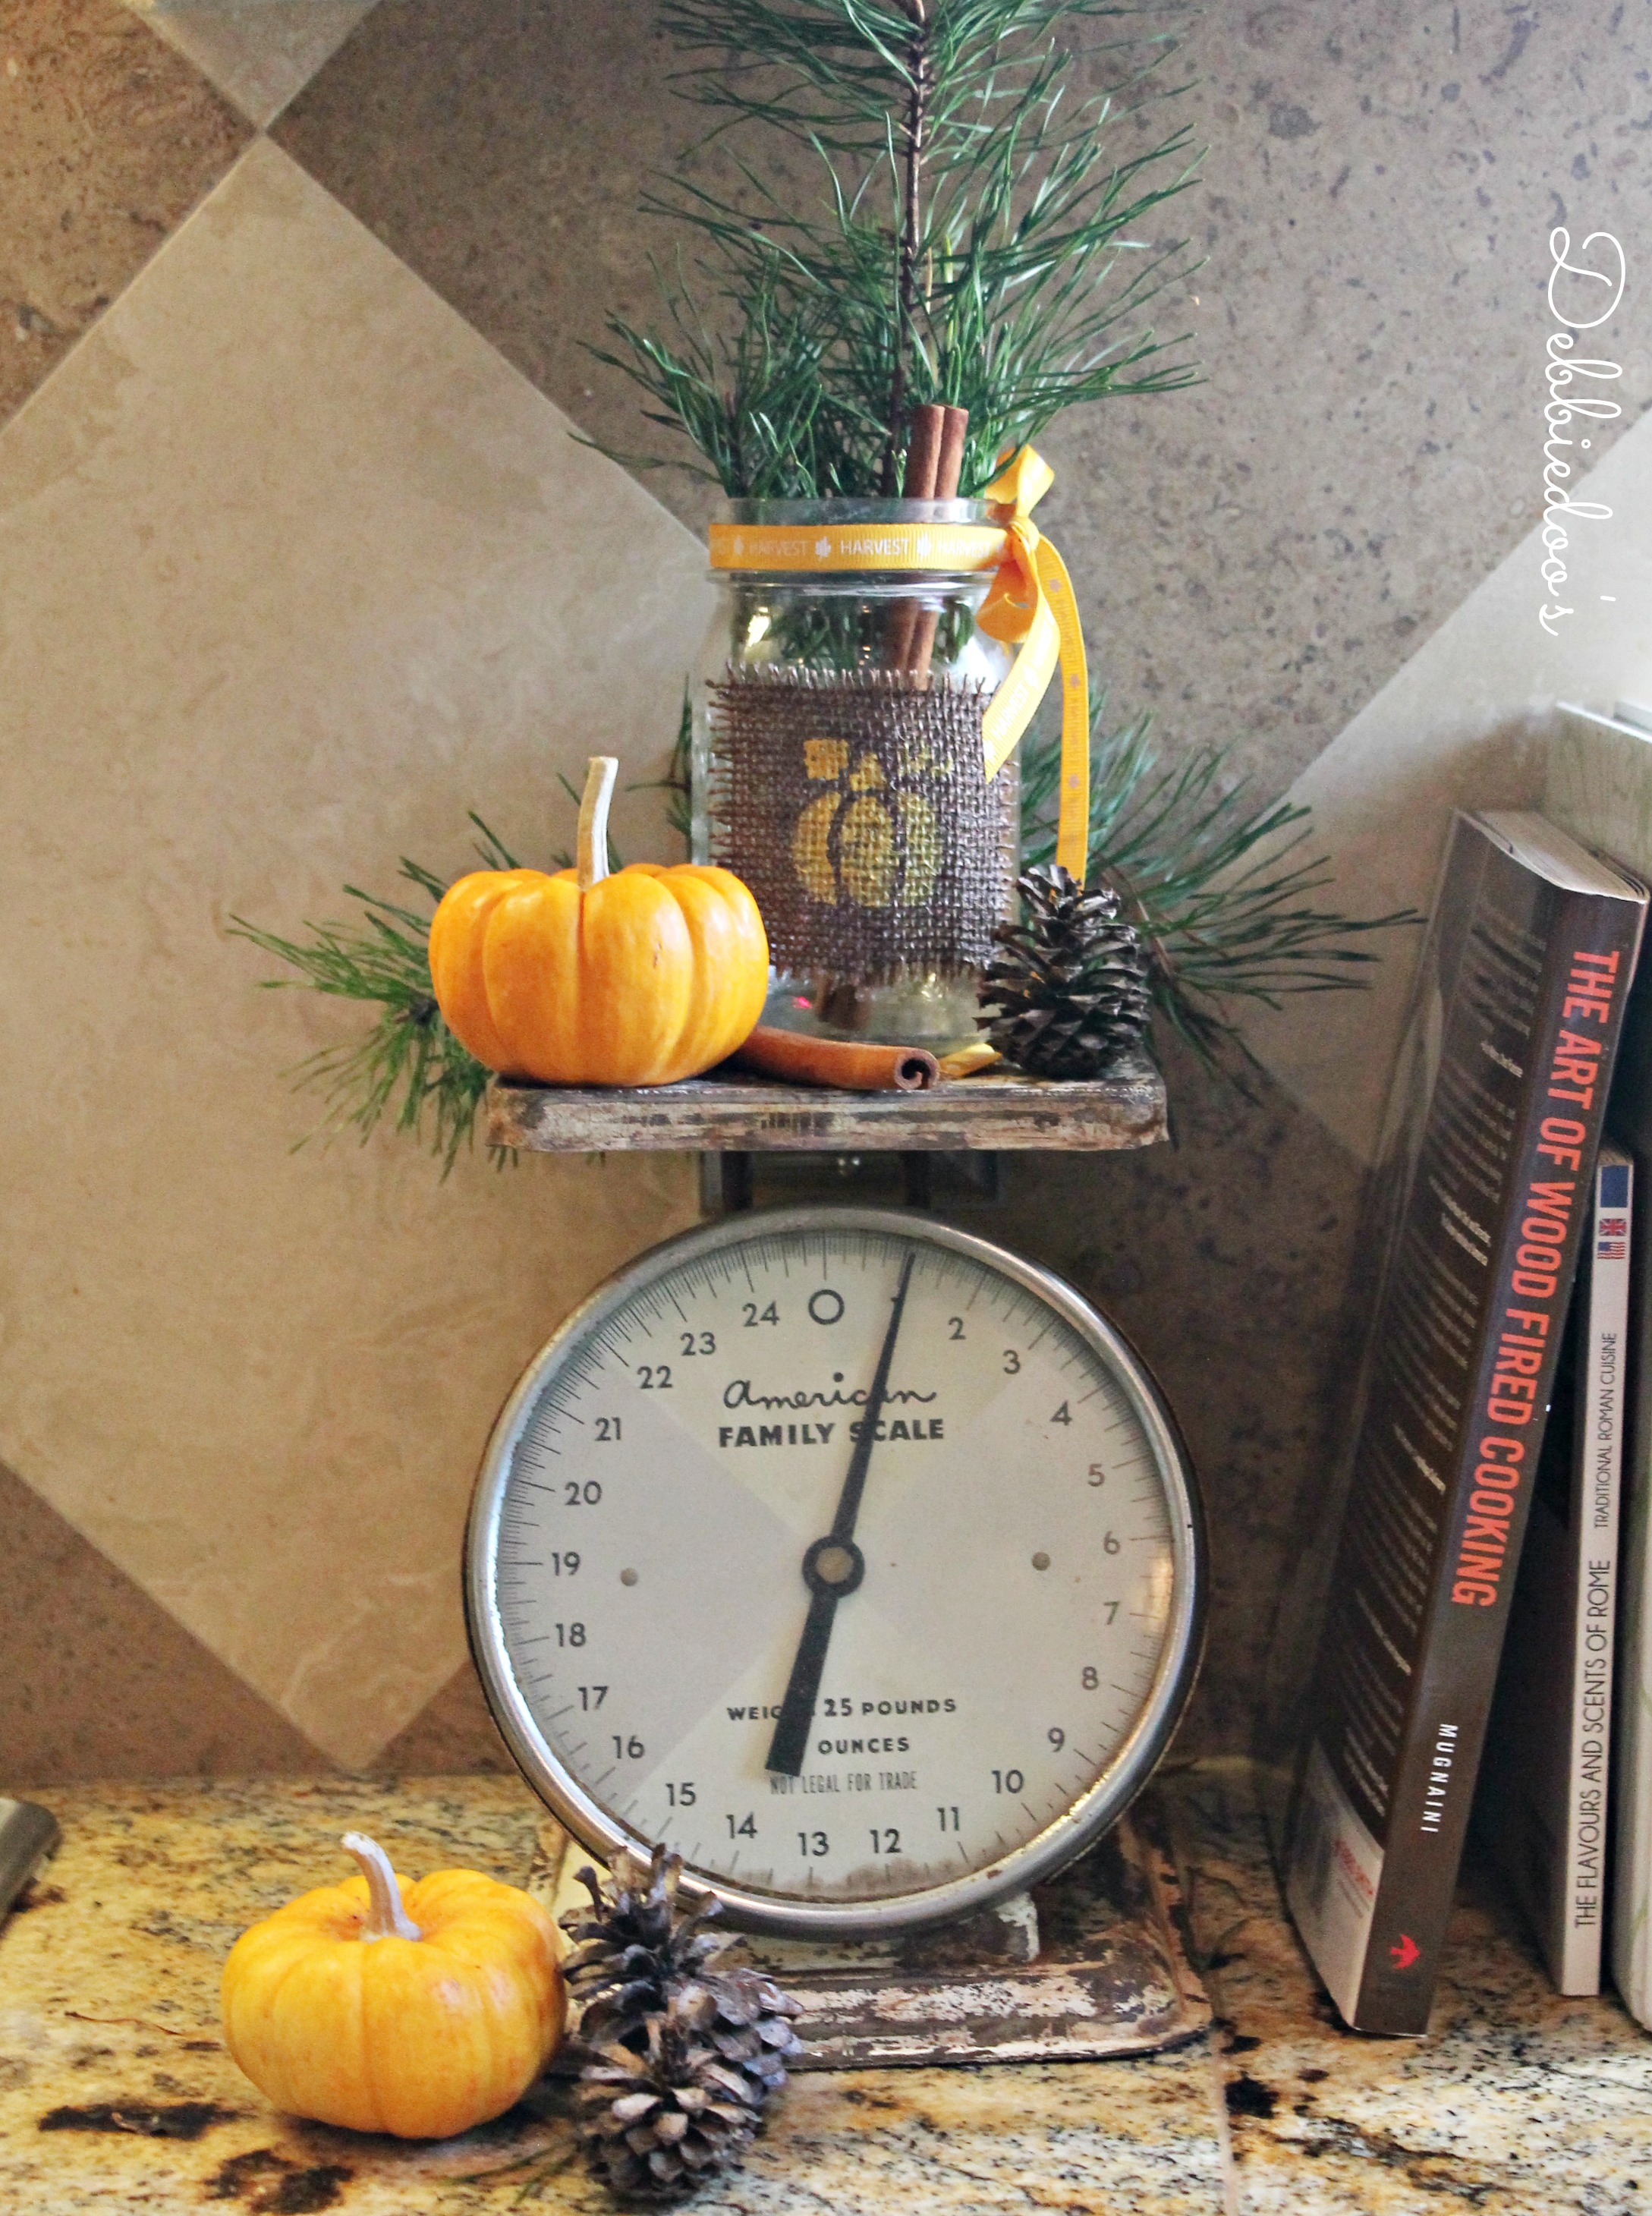 Vintage scale with mason jar craft